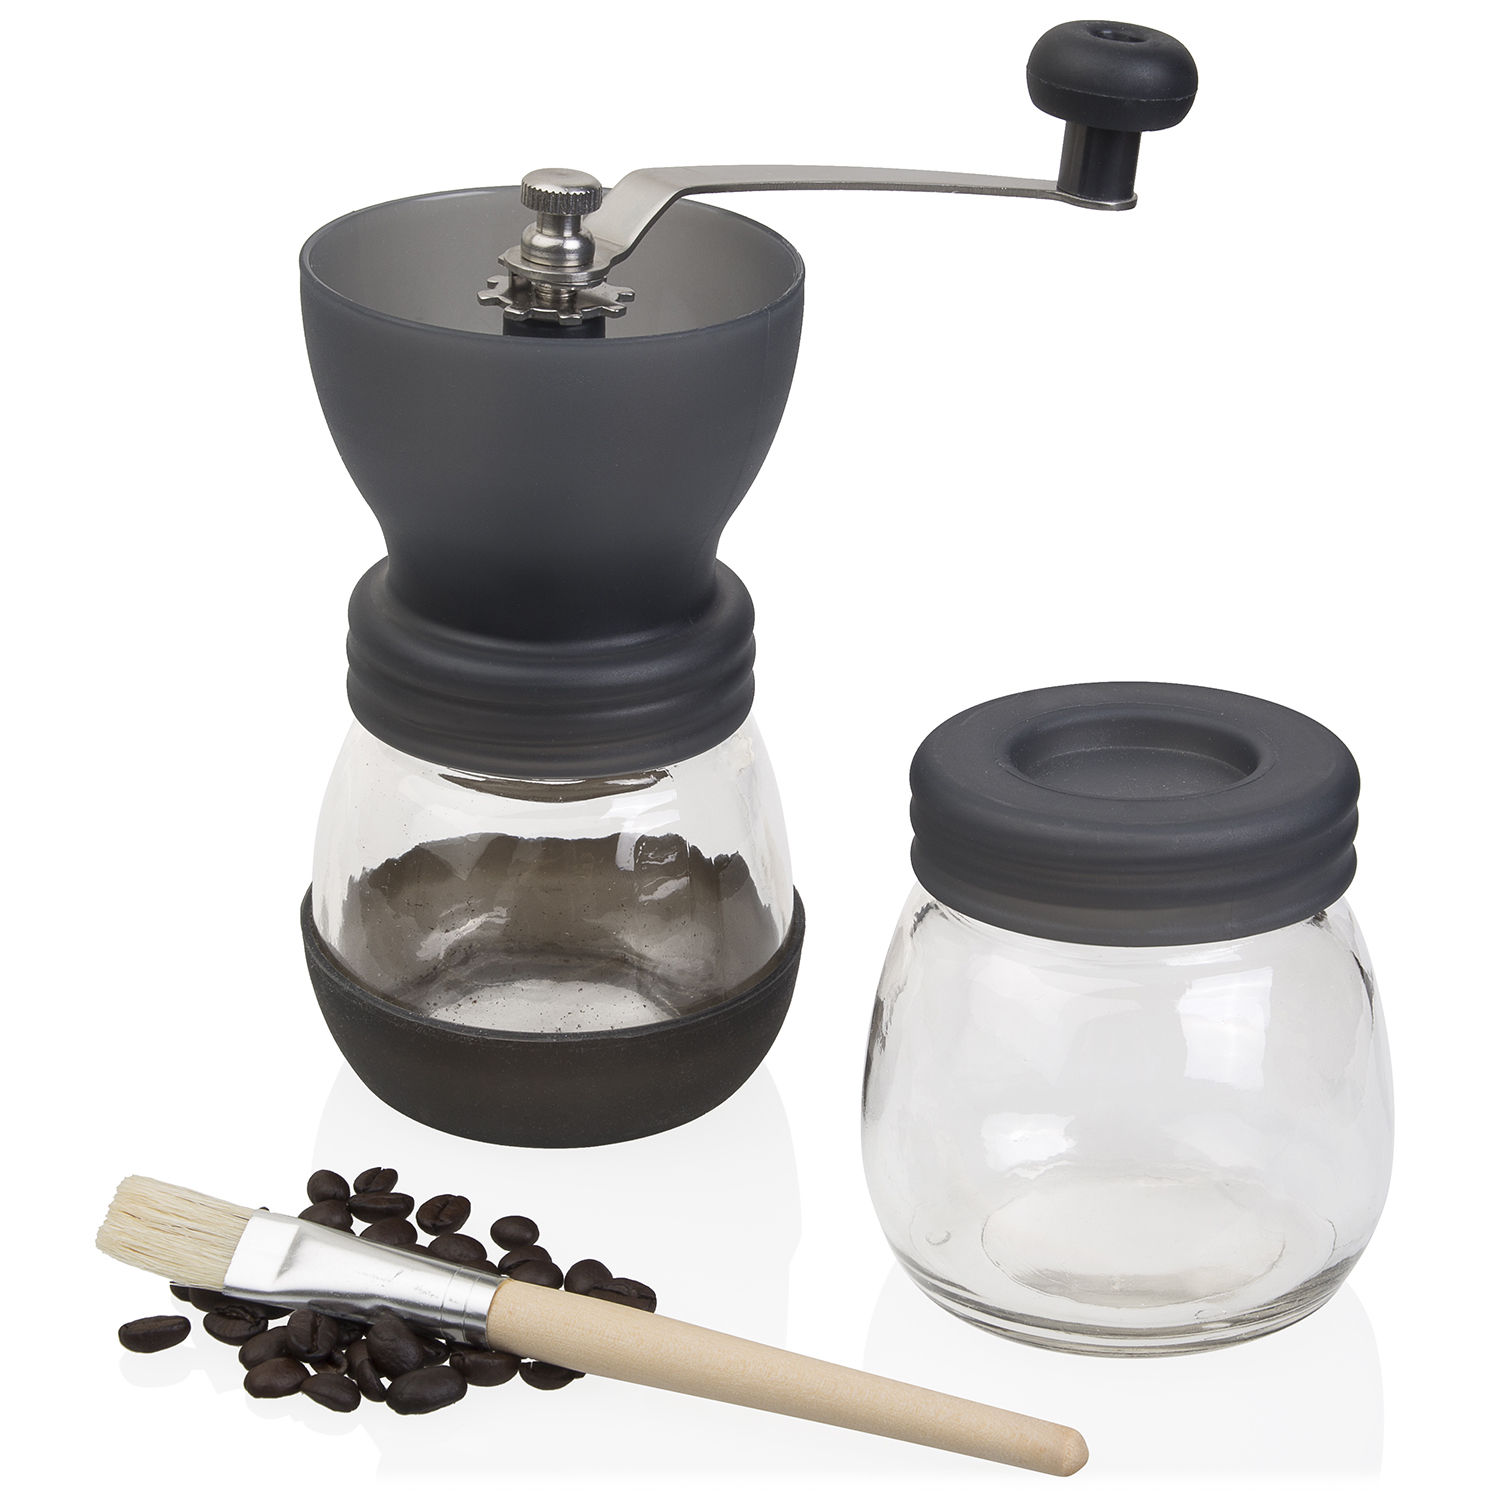 Jumbl Ceramic Coffee Hand Crank Manual Grinder - Adjustable to Different Grind Sizes Includes Brush -Colors May Vary